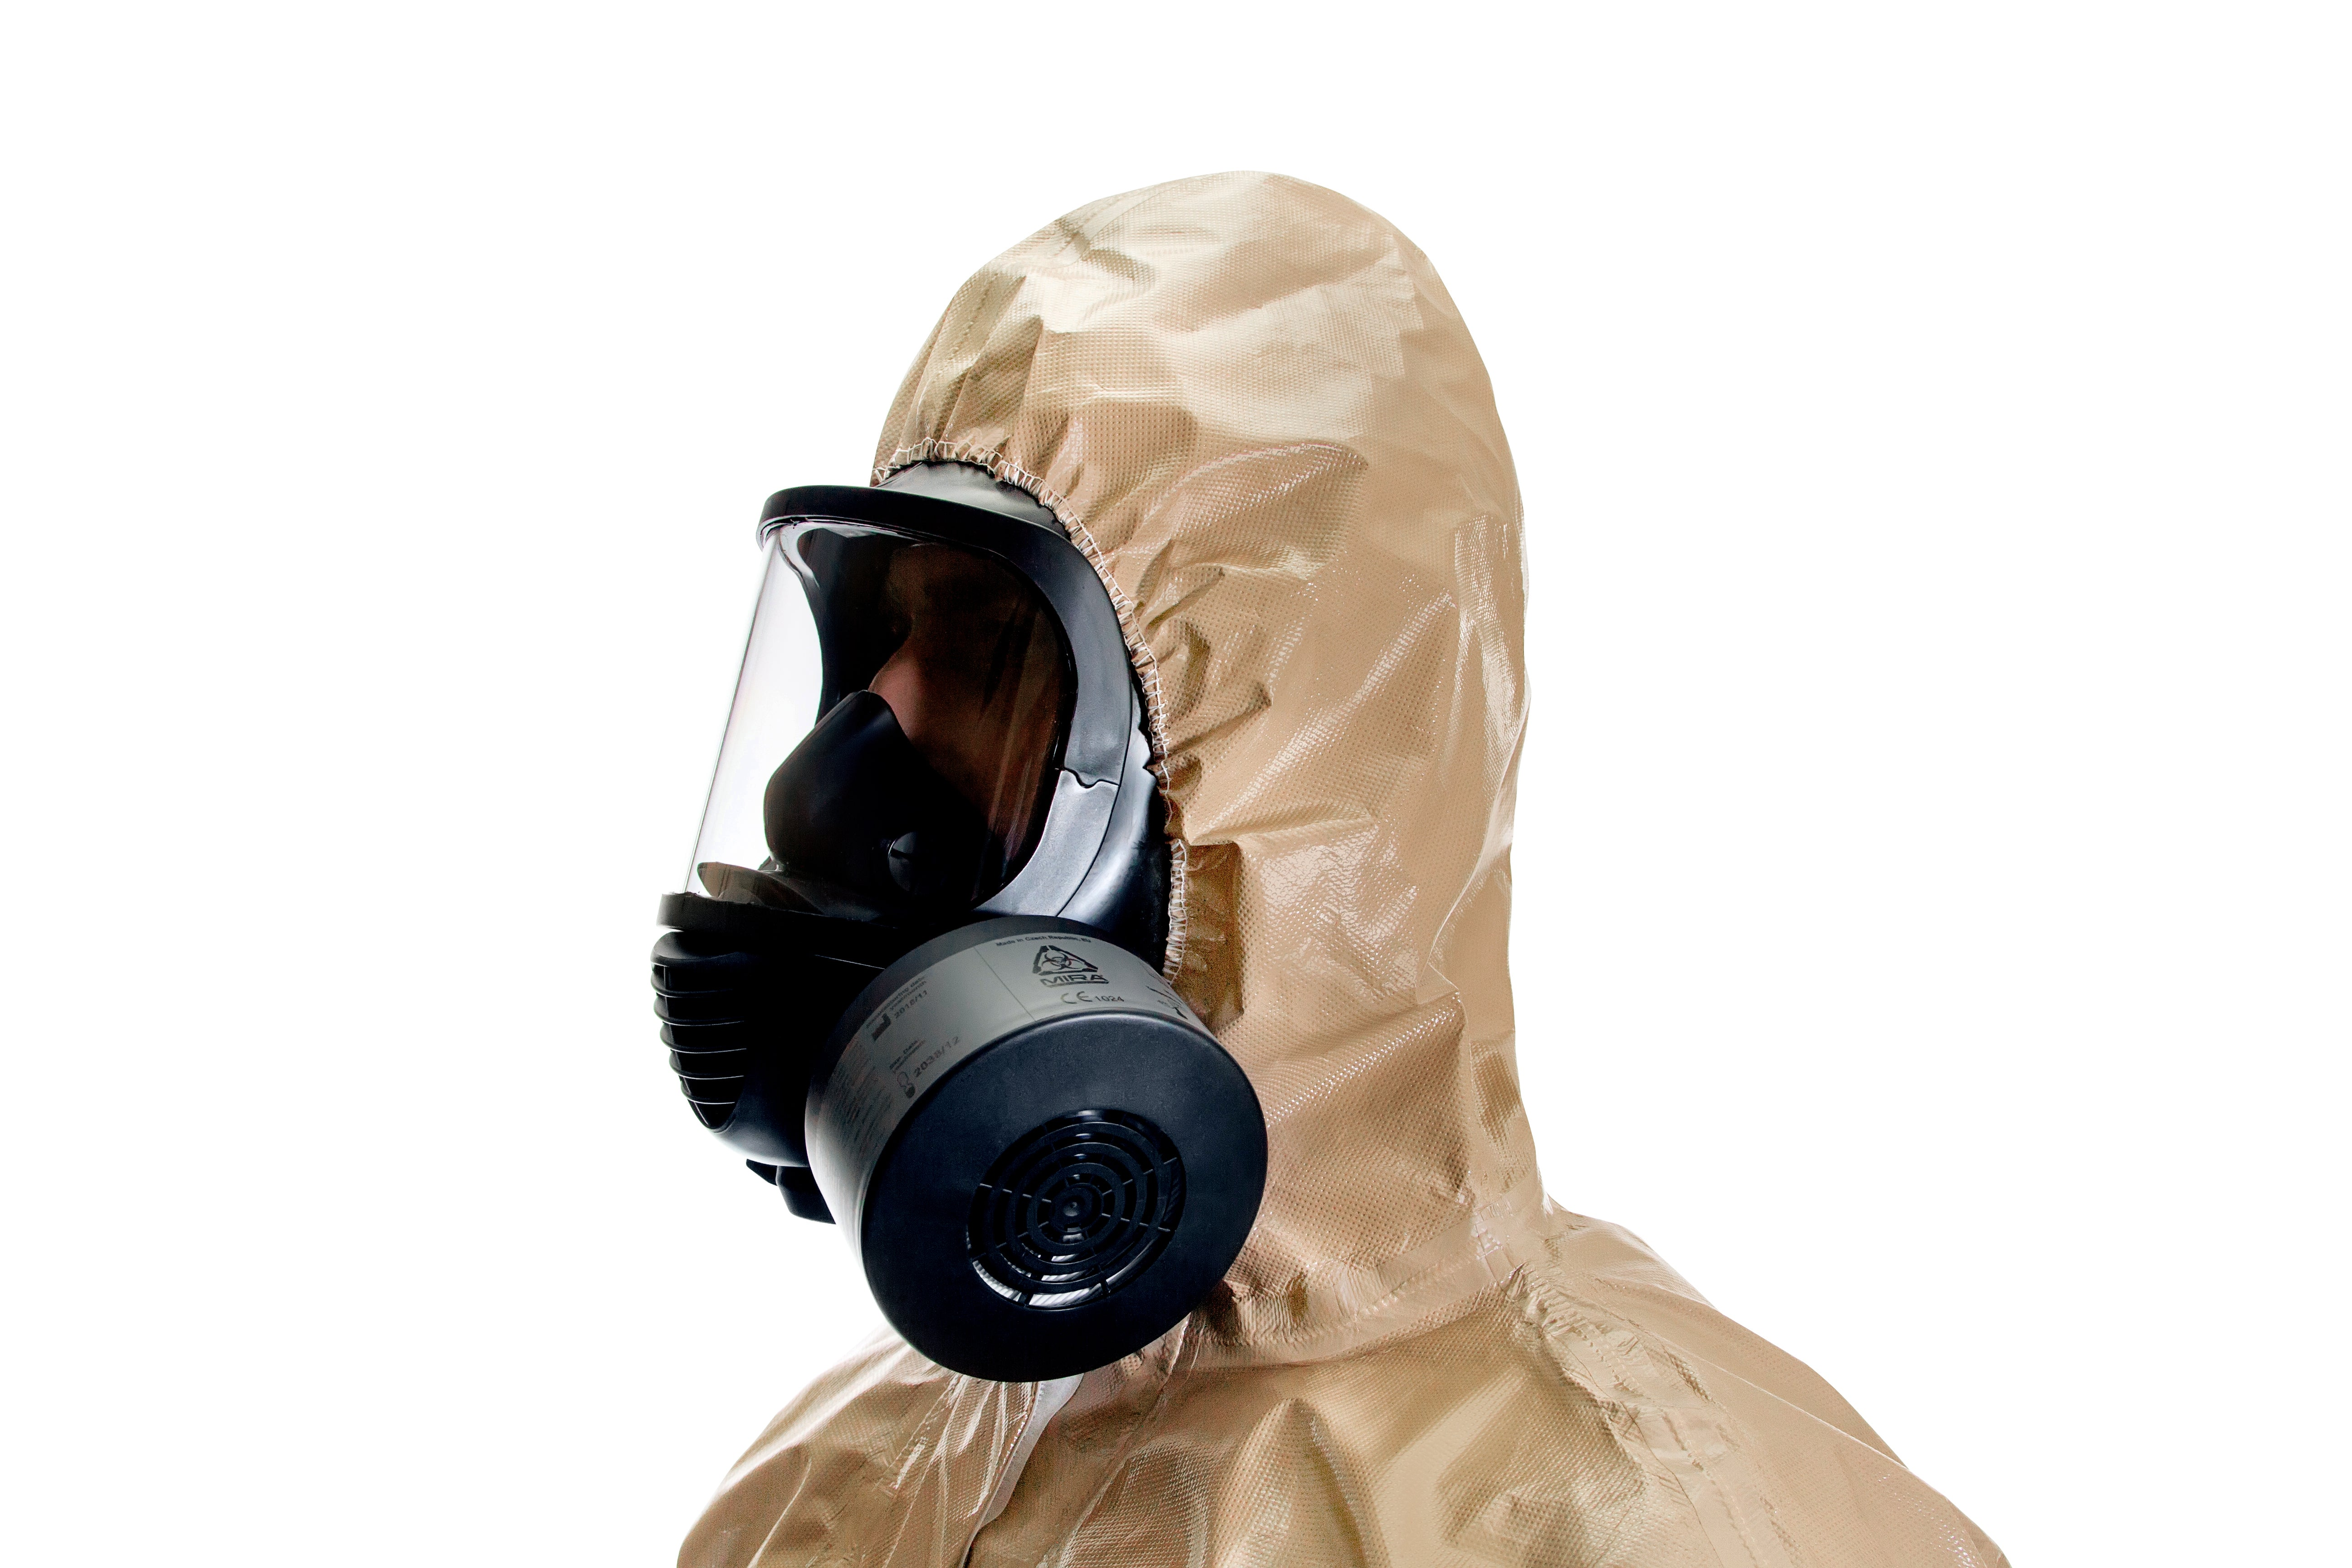 Side view of a man with a HAZMAT suit and the NBC-77 SOF CBRN gas mask filter